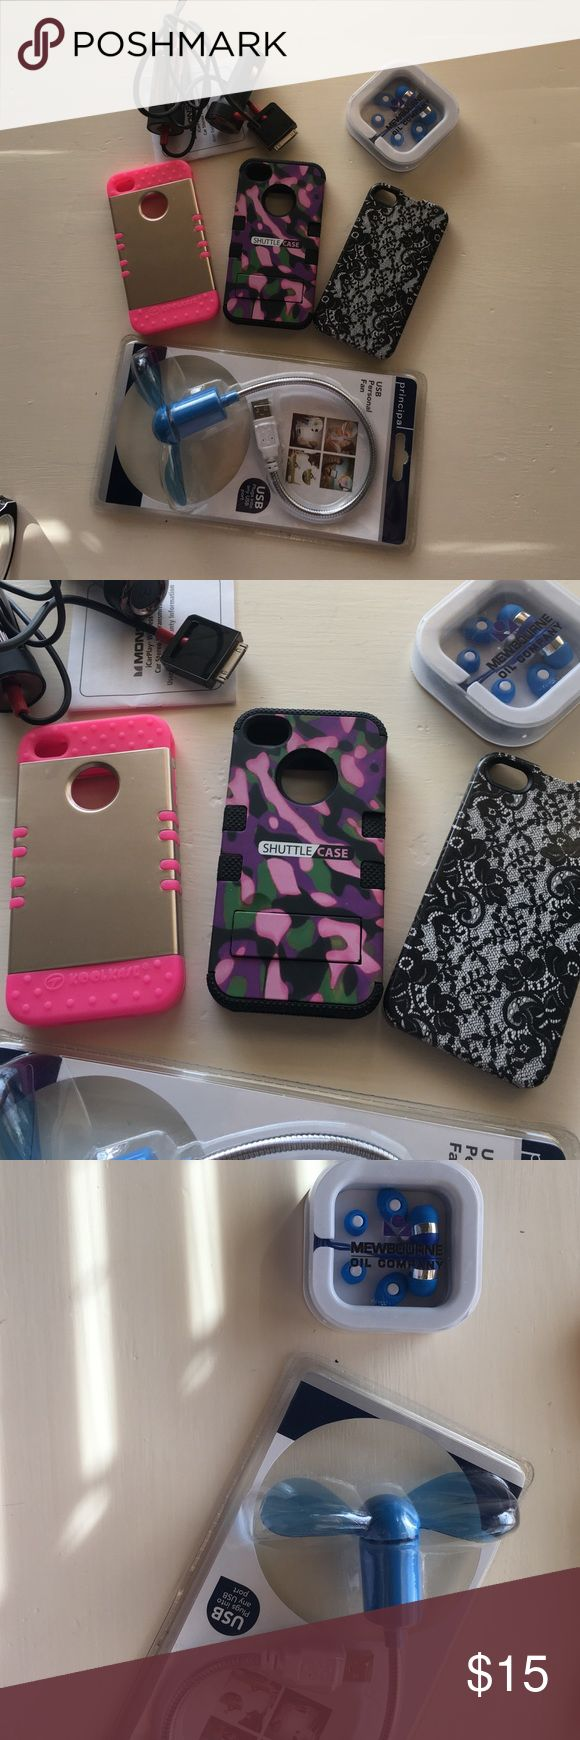 iPhone 5S bundle Includes 3 phone cases, new earbuds, car adapter, and computer fan (new) Accessories Phone Cases